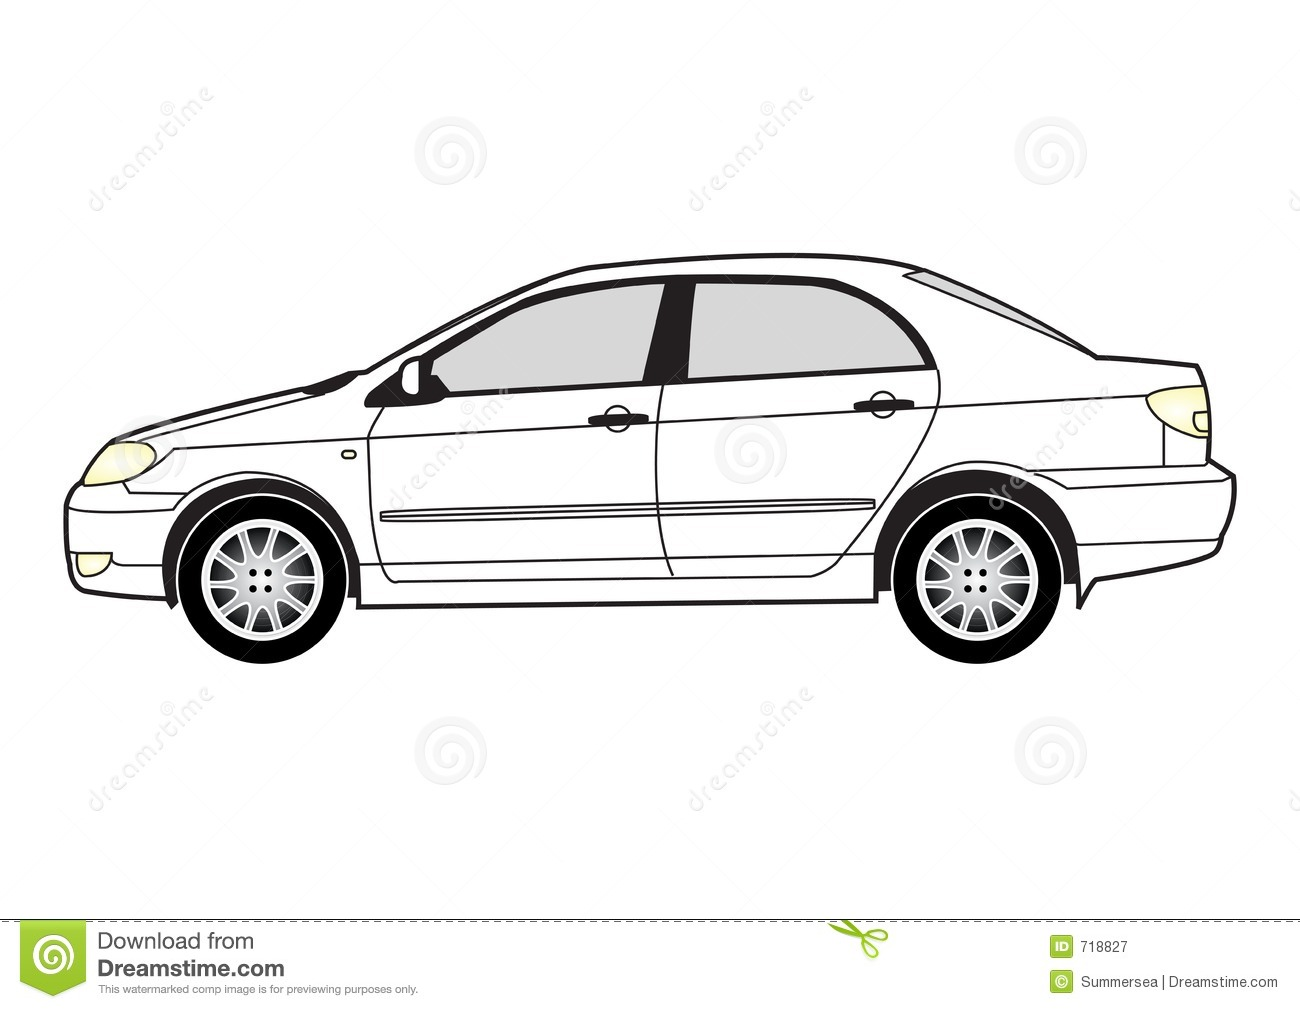 Line Drawing Of Car : Line art car royalty free stock photography image